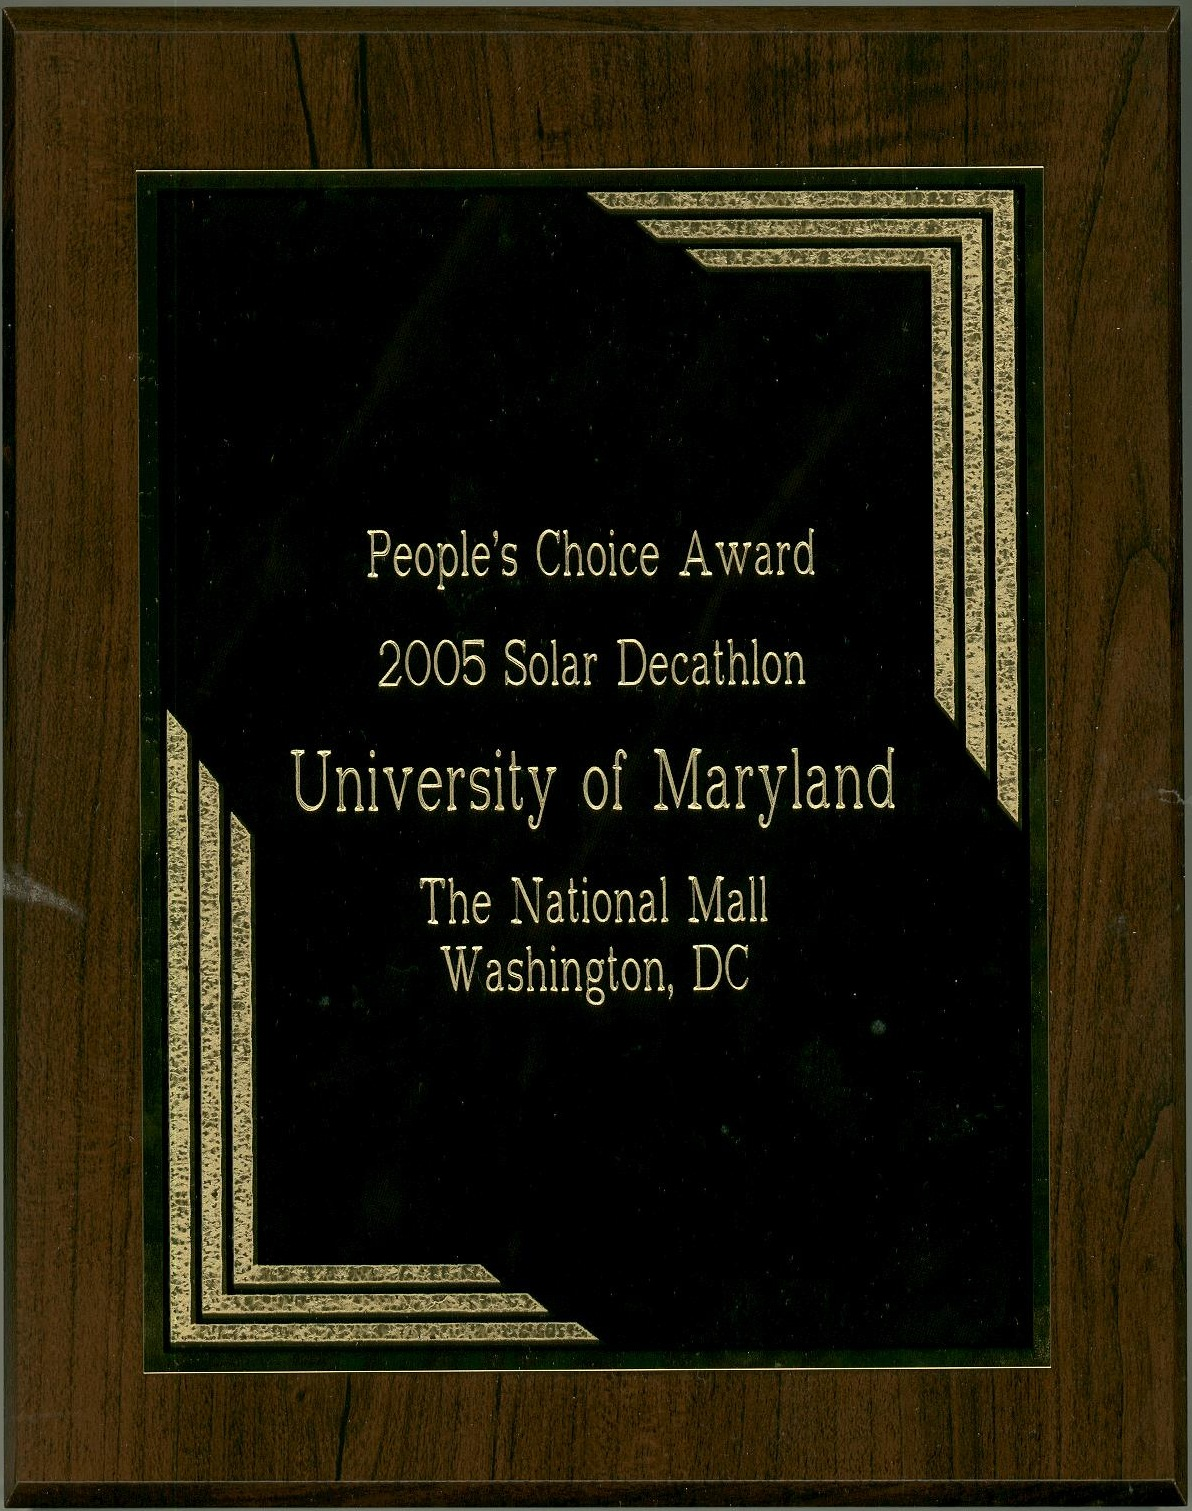 People's Choice Award Plaque